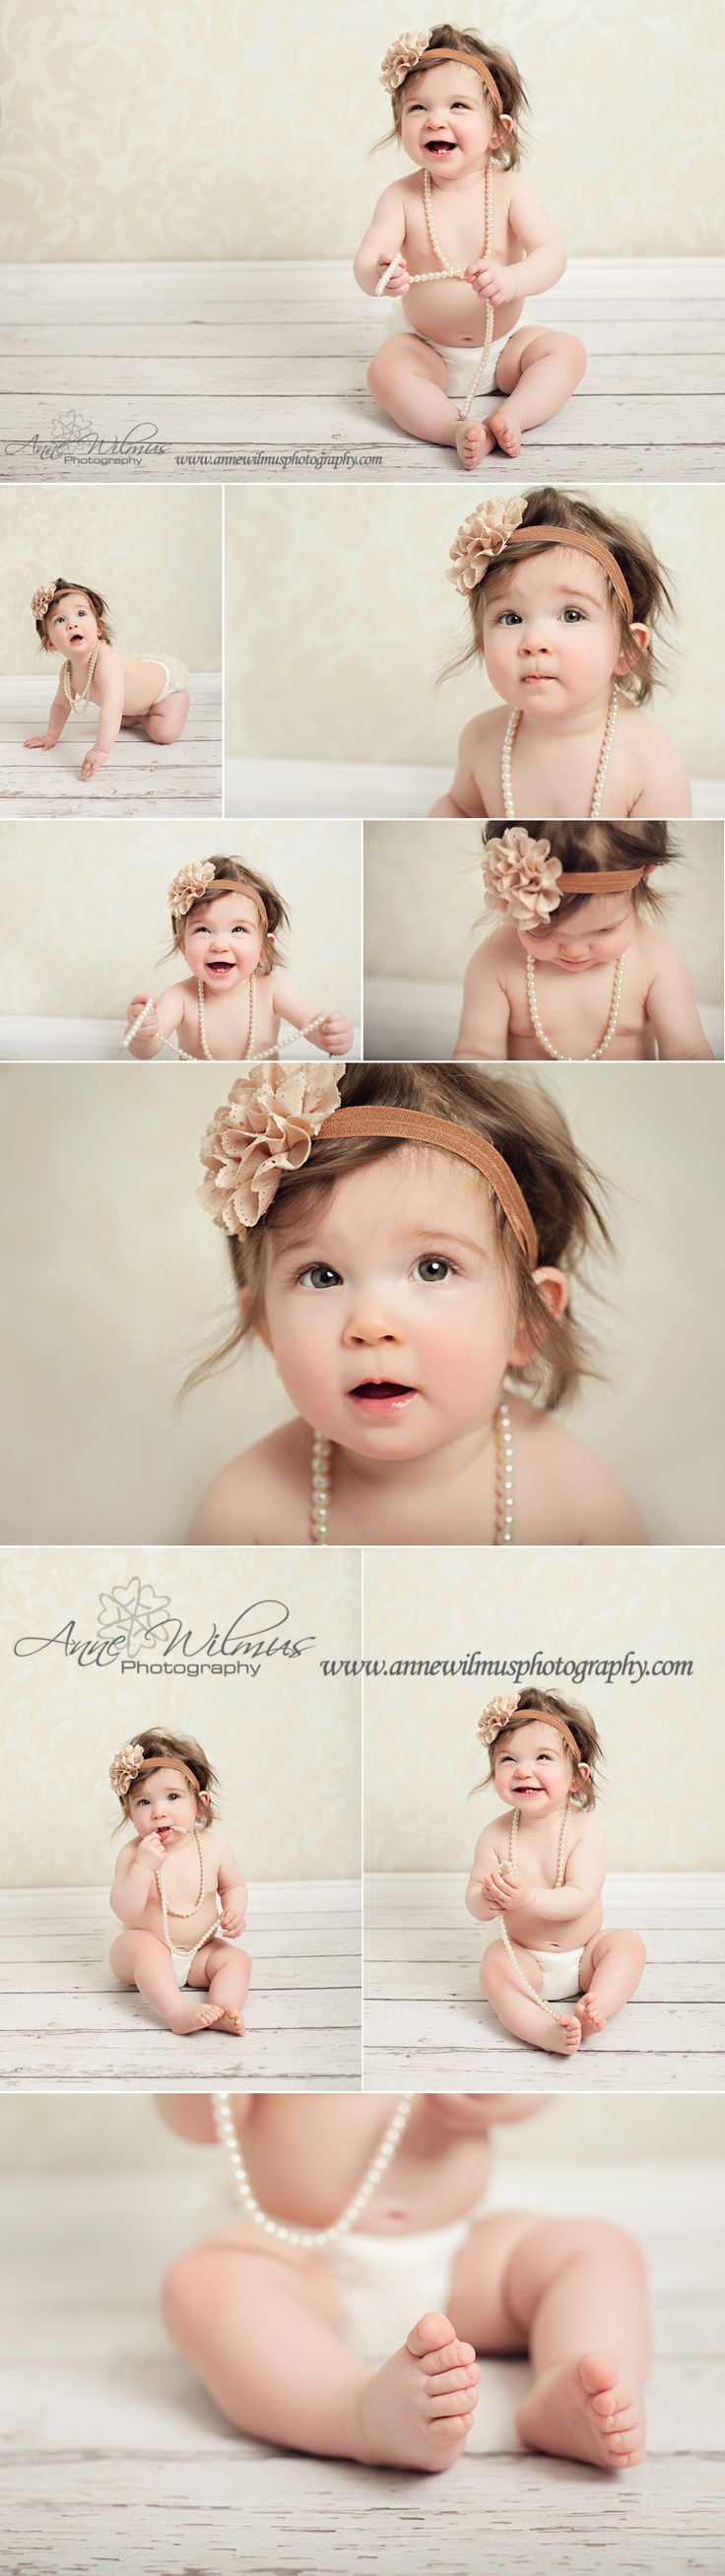 Baby girl photography 5 months